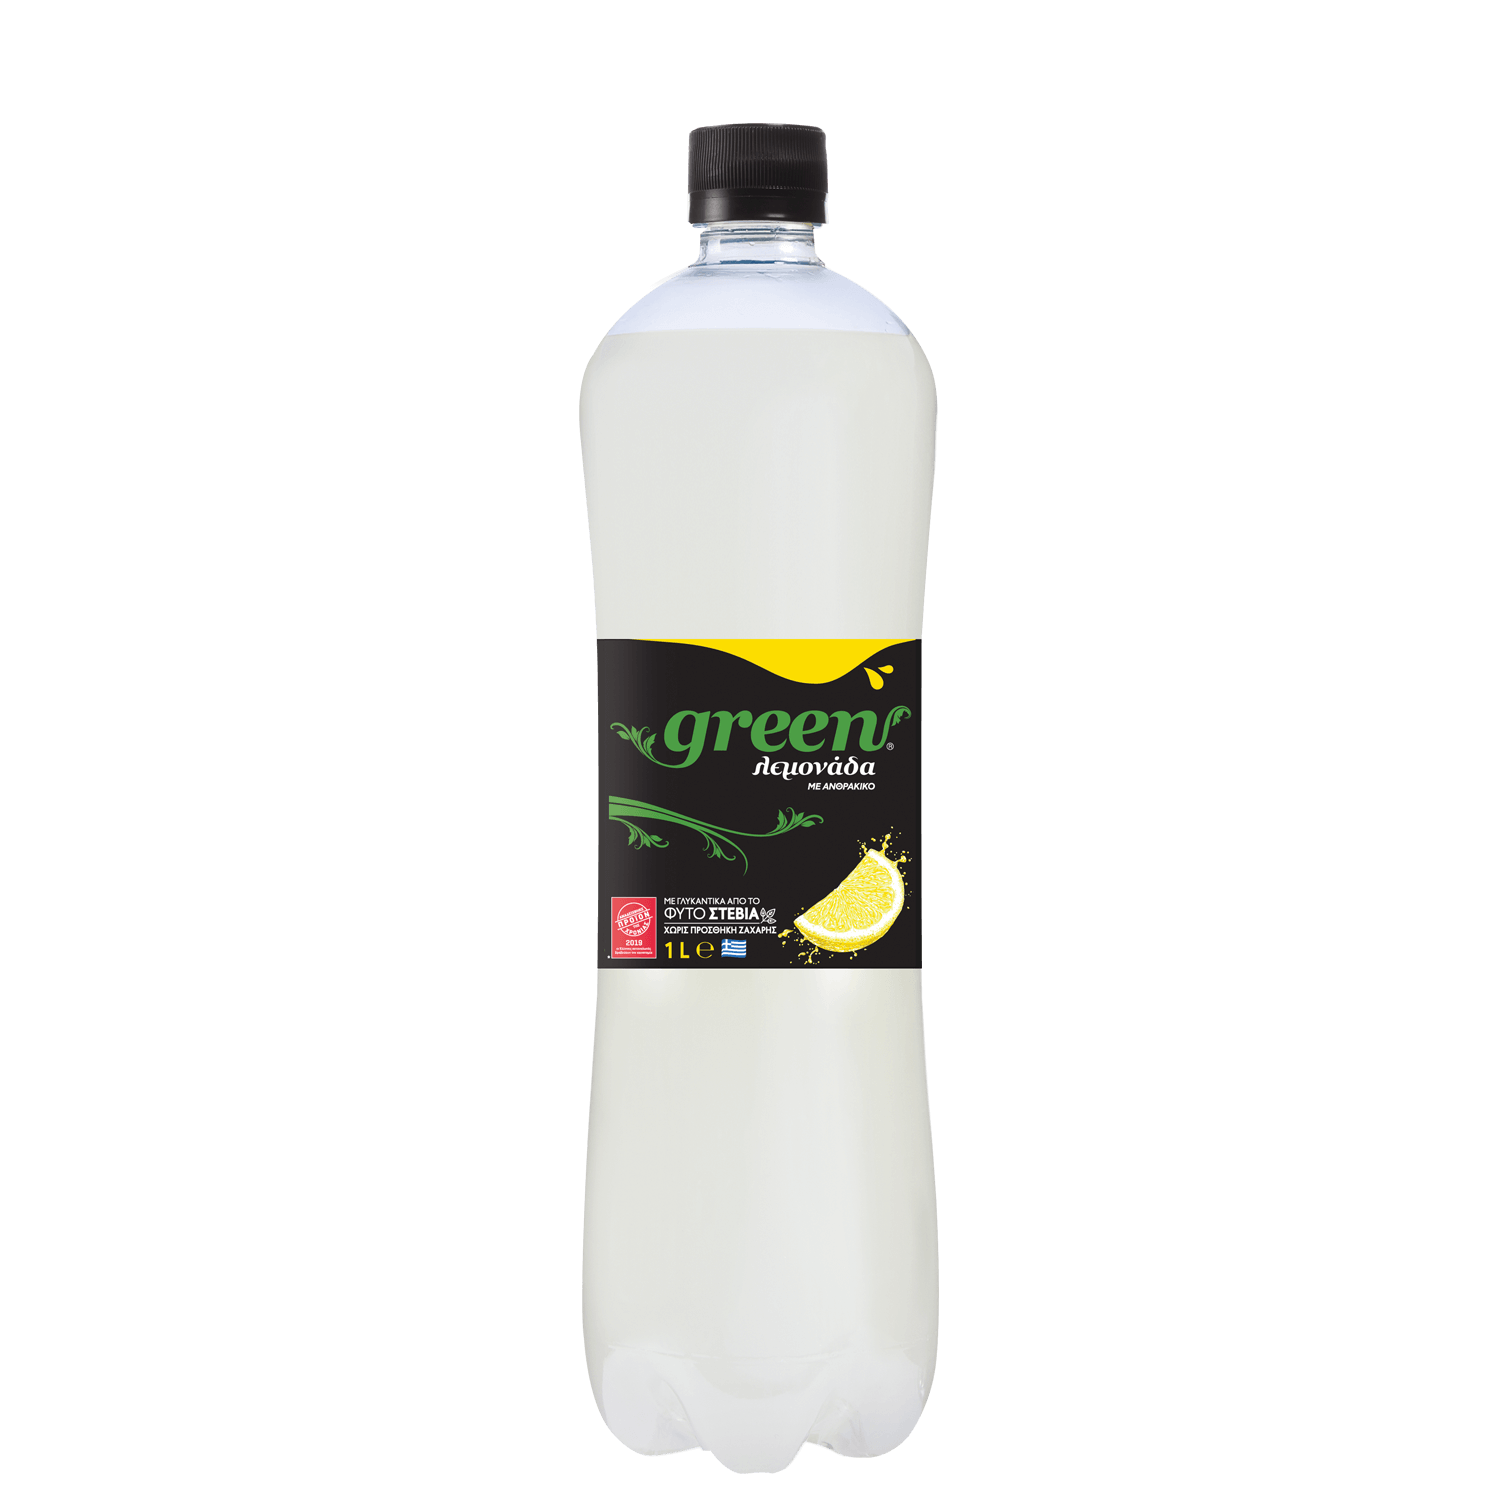 Green Lemon - PET - 1lt Bottle